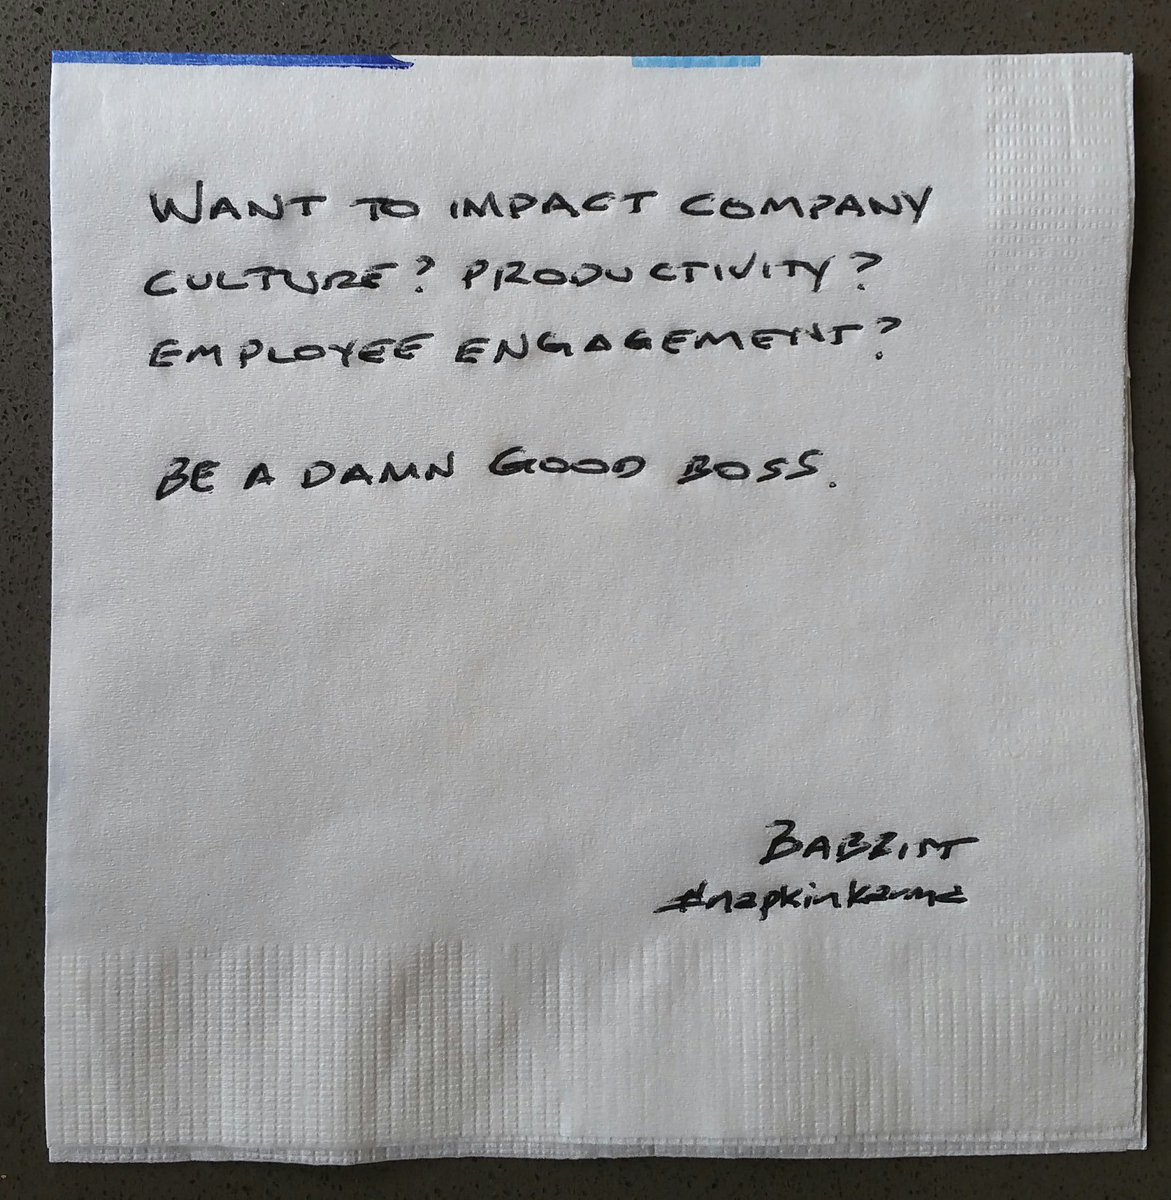 Want to impact company culture? Productivity? Employee engagement?  Be a damn good boss.  #leadership #napkinkarma https://t.co/wohYpmG9gB